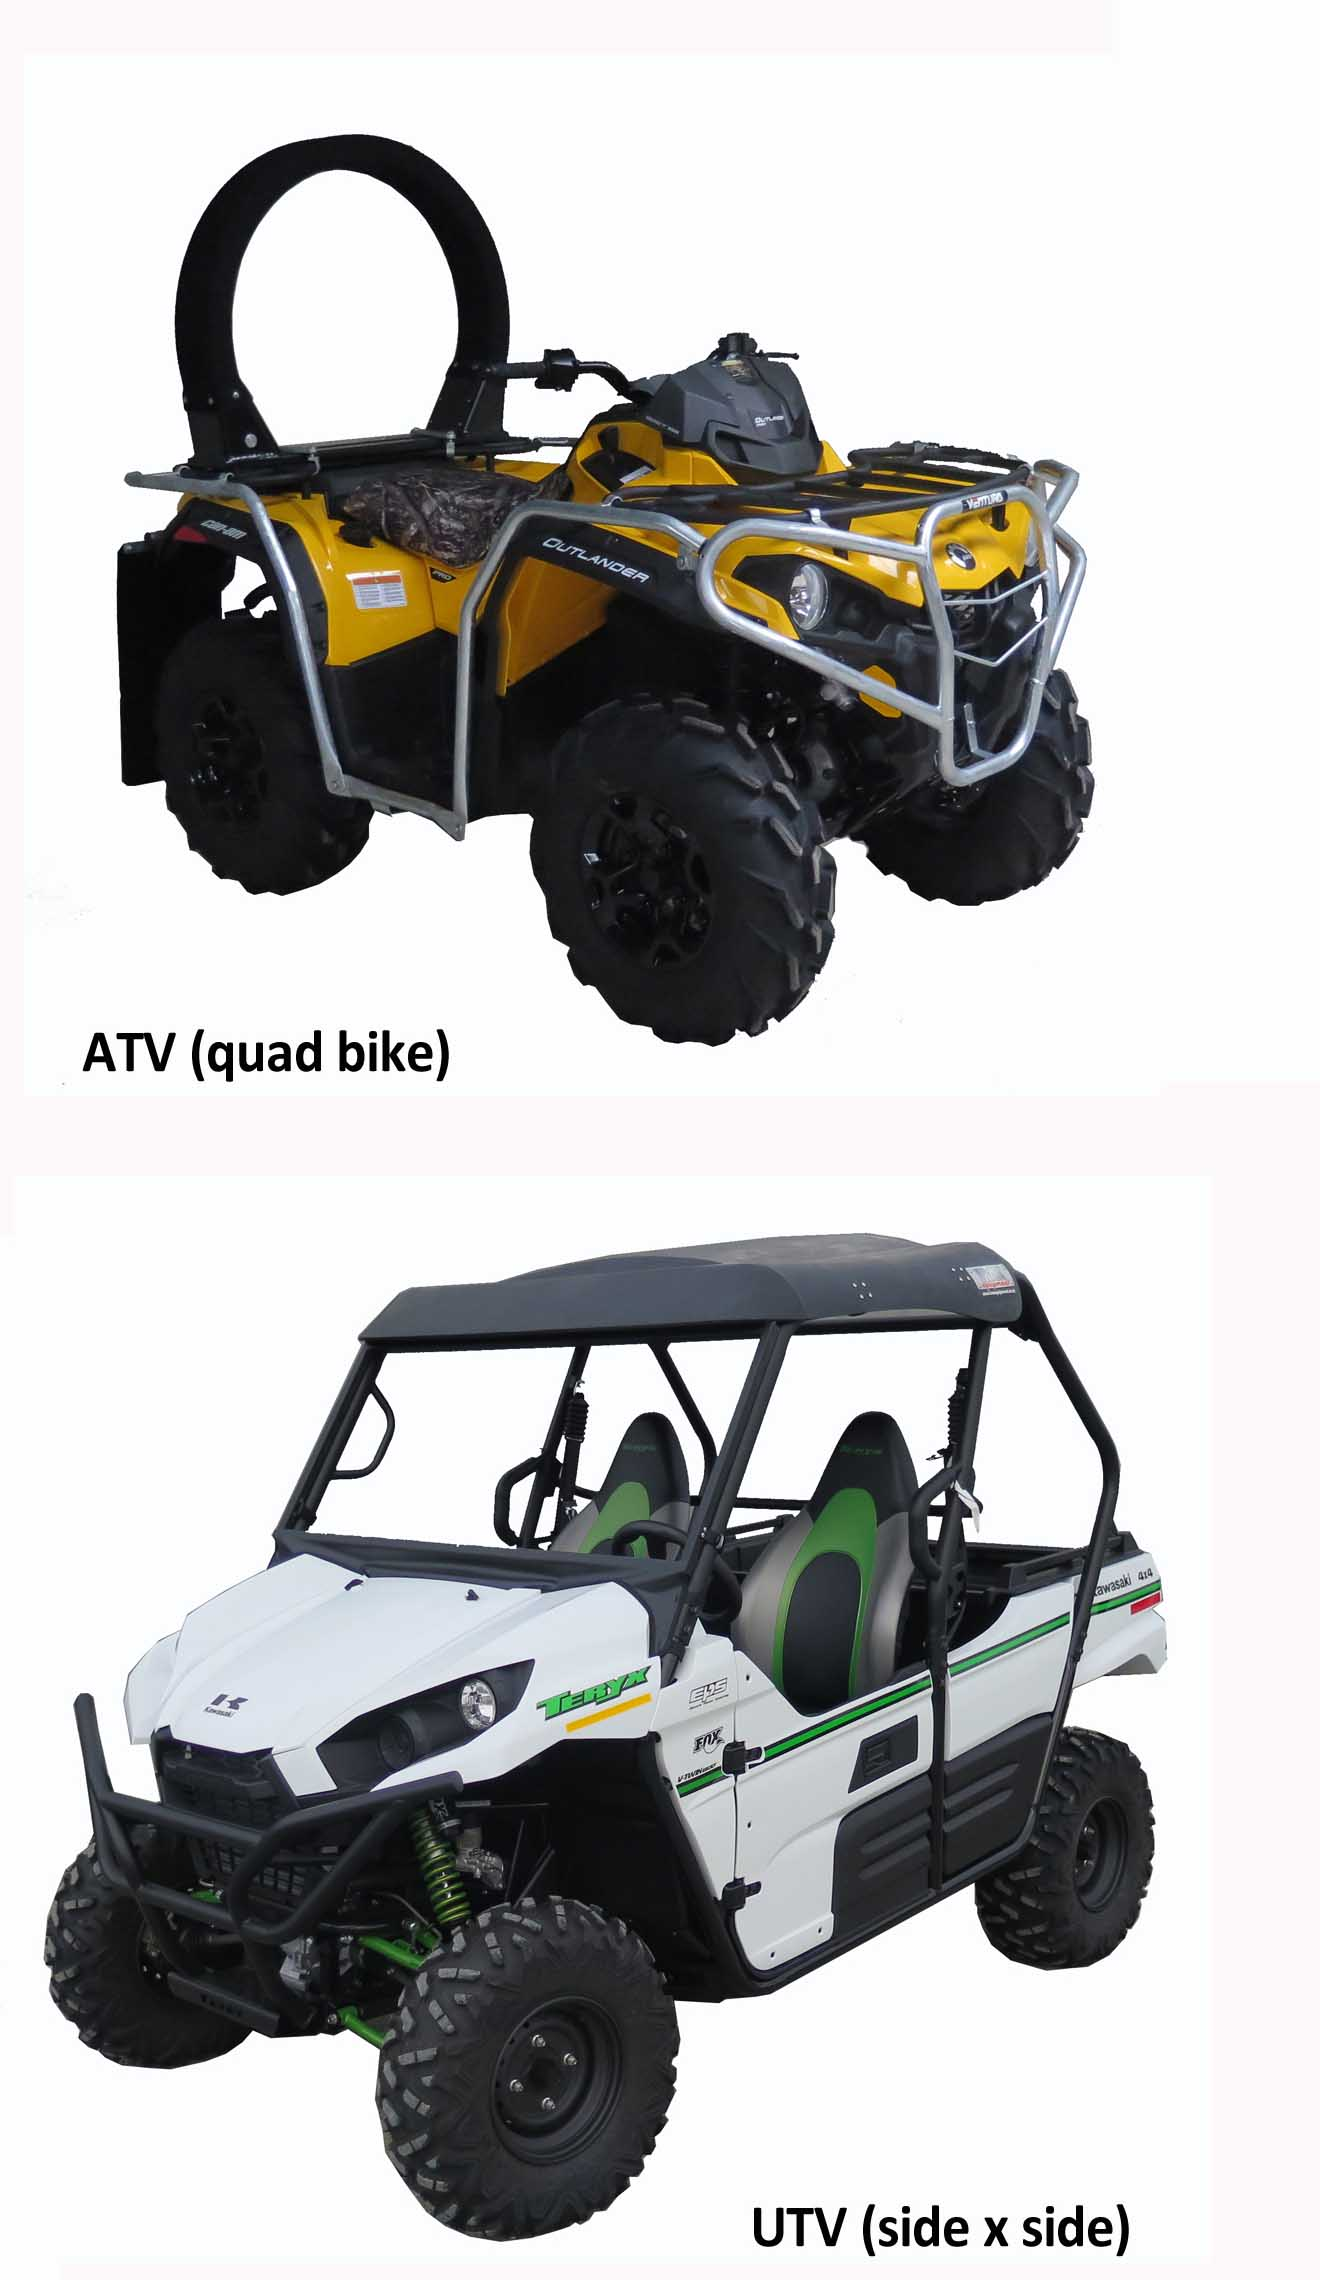 ATVs (quad bikes) & UTVs (side by sides)